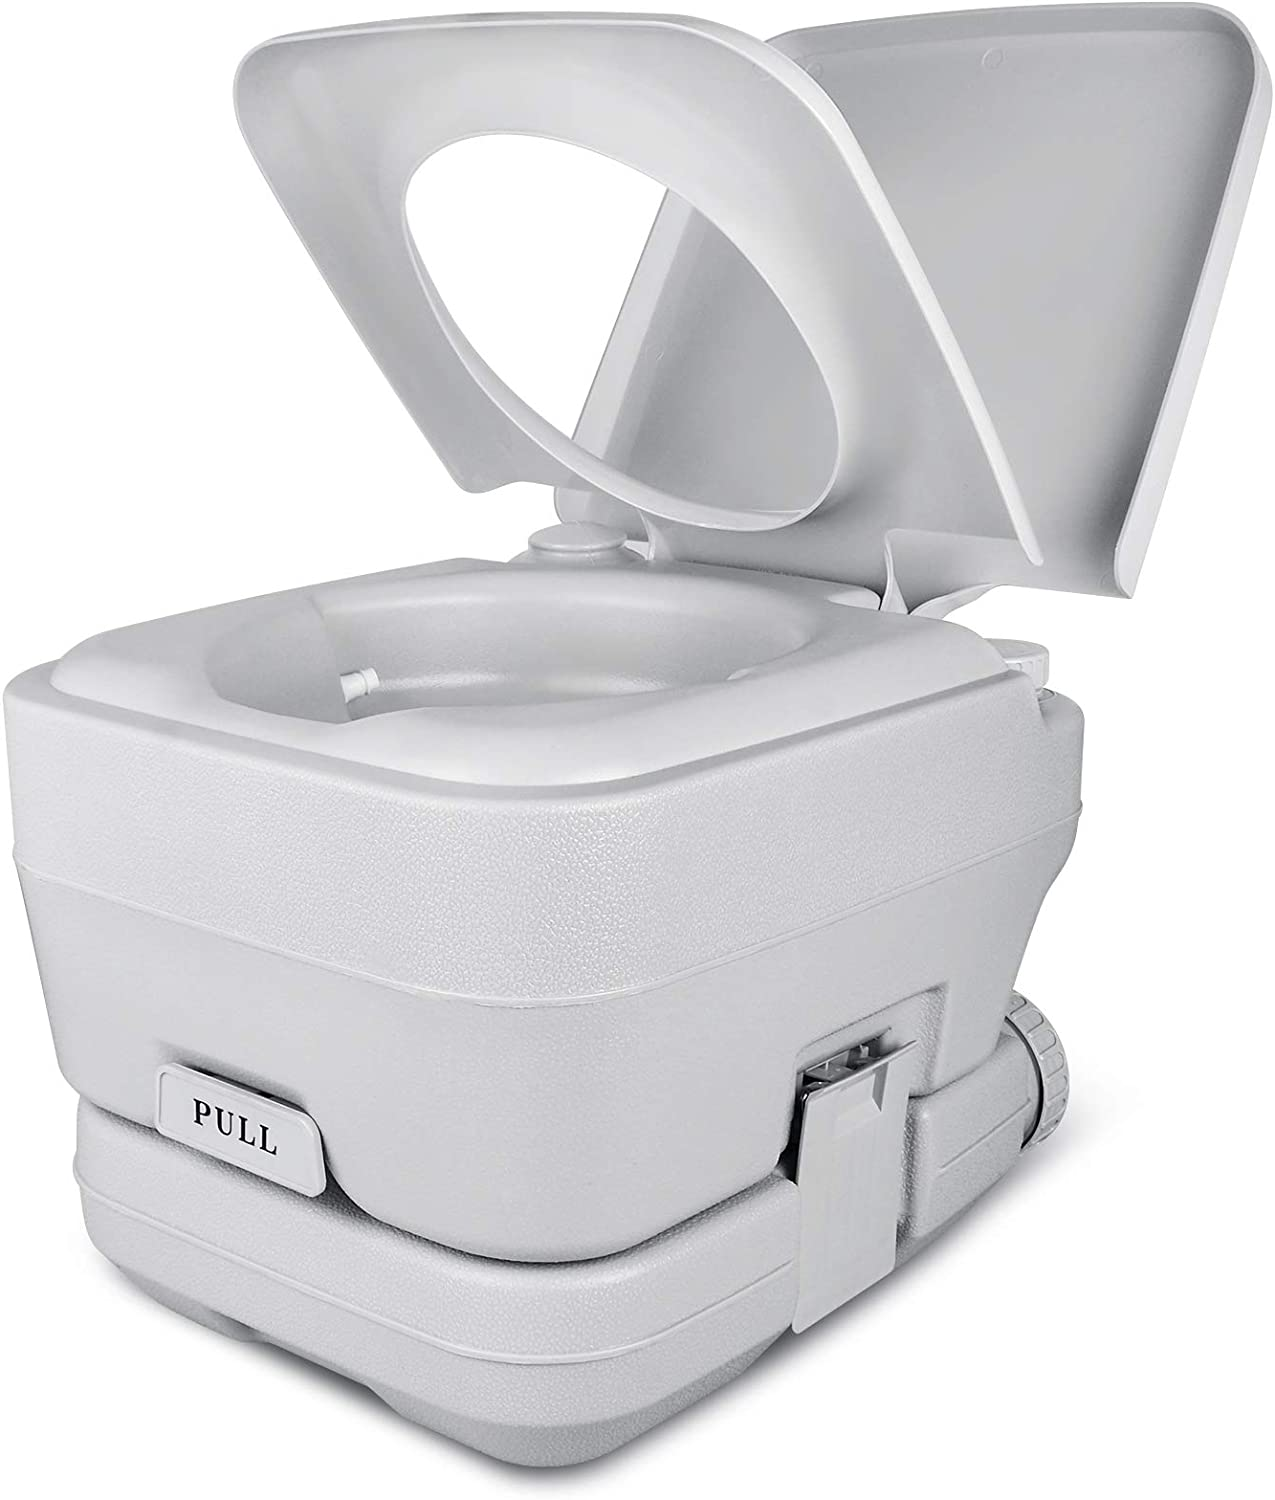 Best Composting Toilets for a Beautiful, Eco-Friendly Home: A Comprehensive Guide